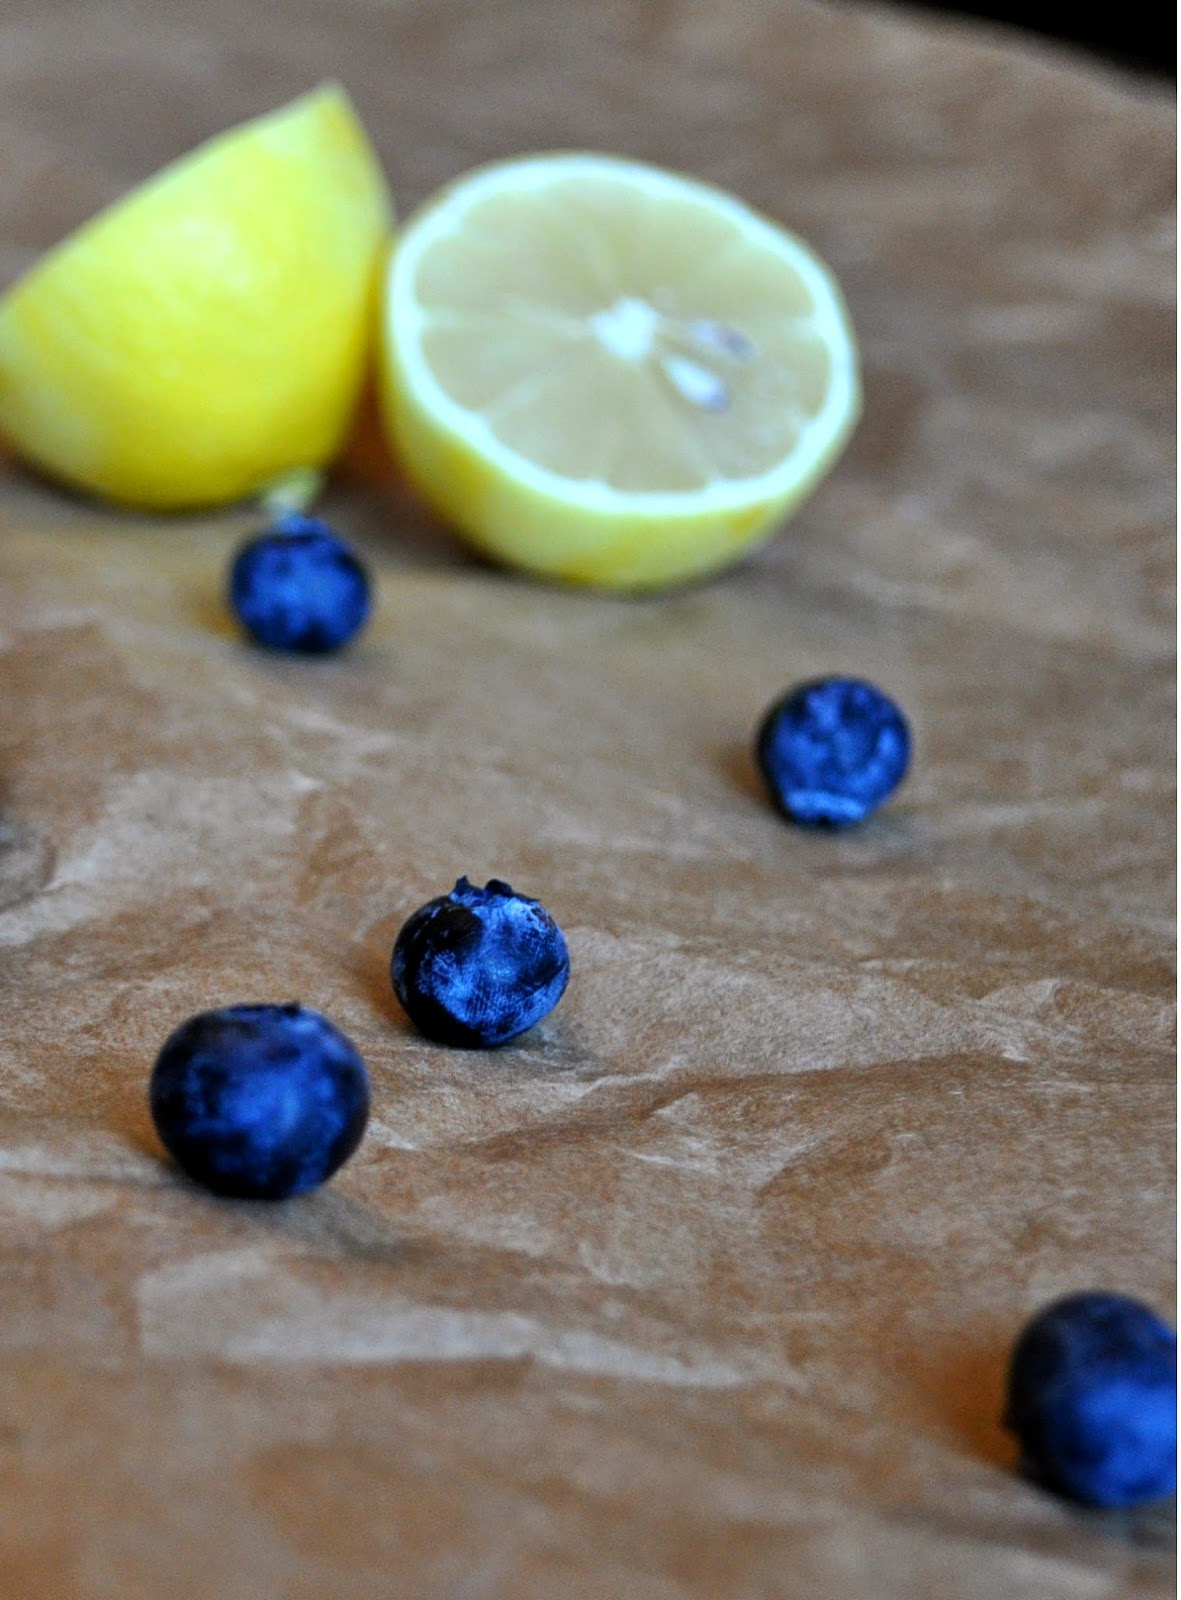 Blueberries and Lemon